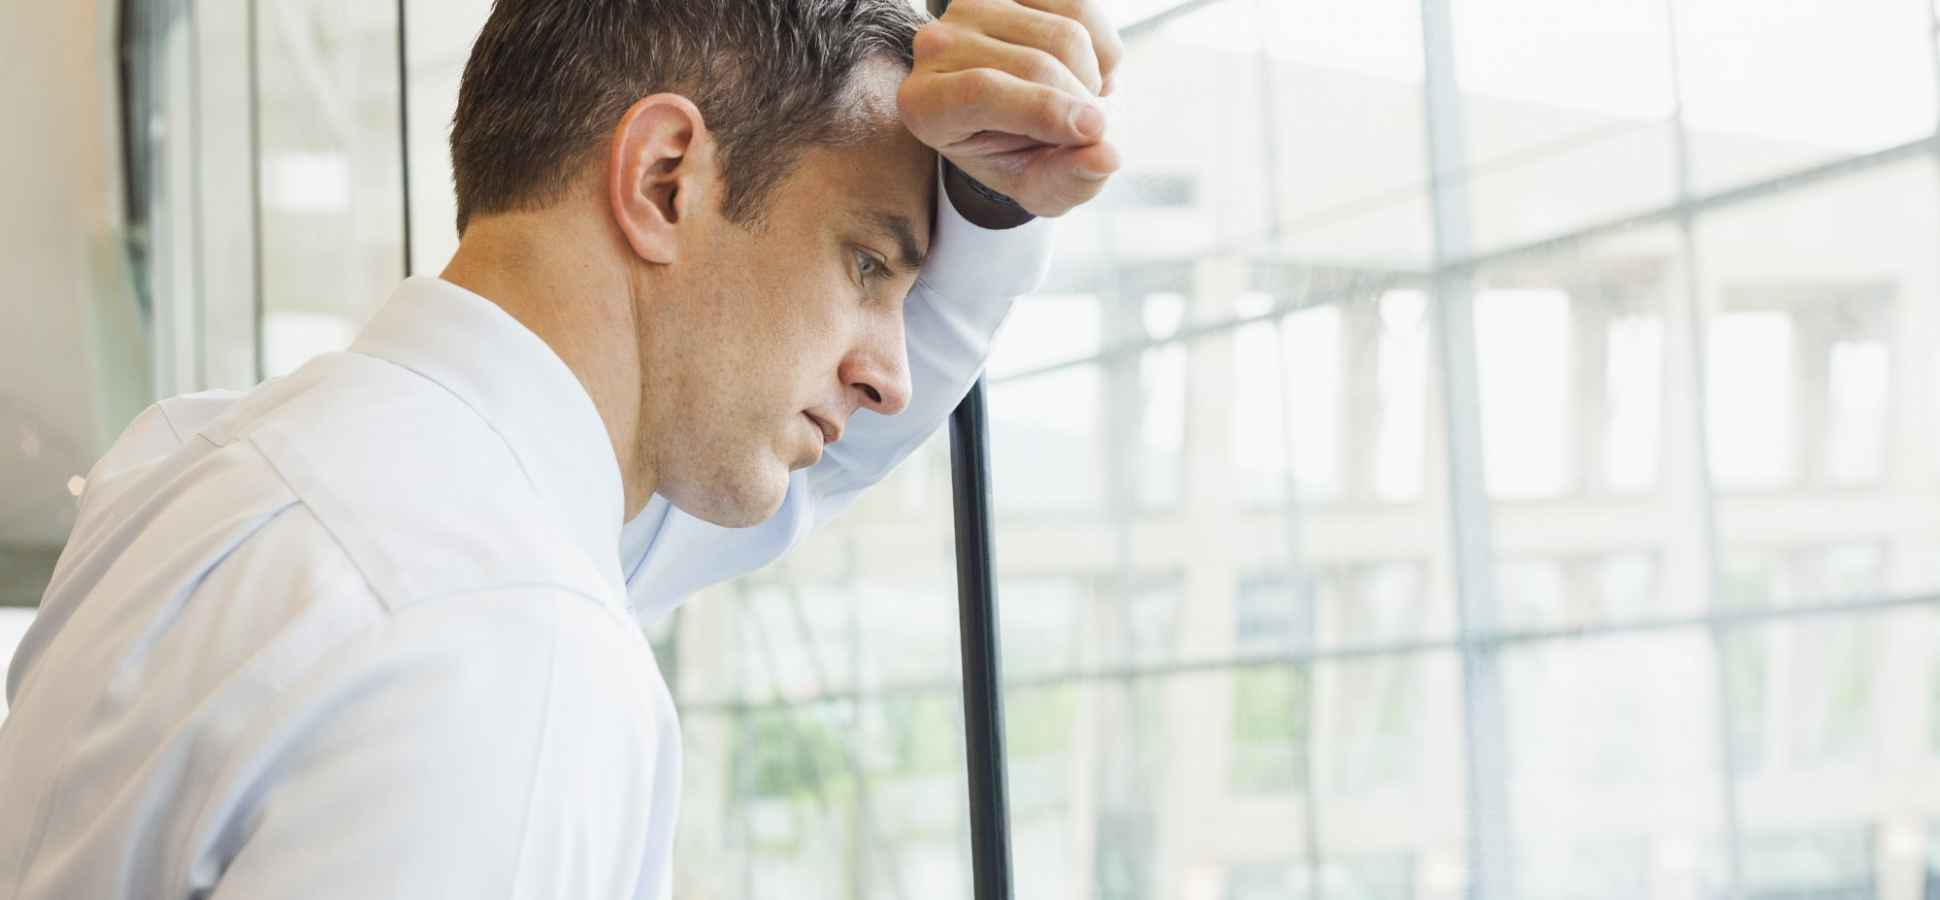 7 Effective Ways to Tame Your Negative Thoughts